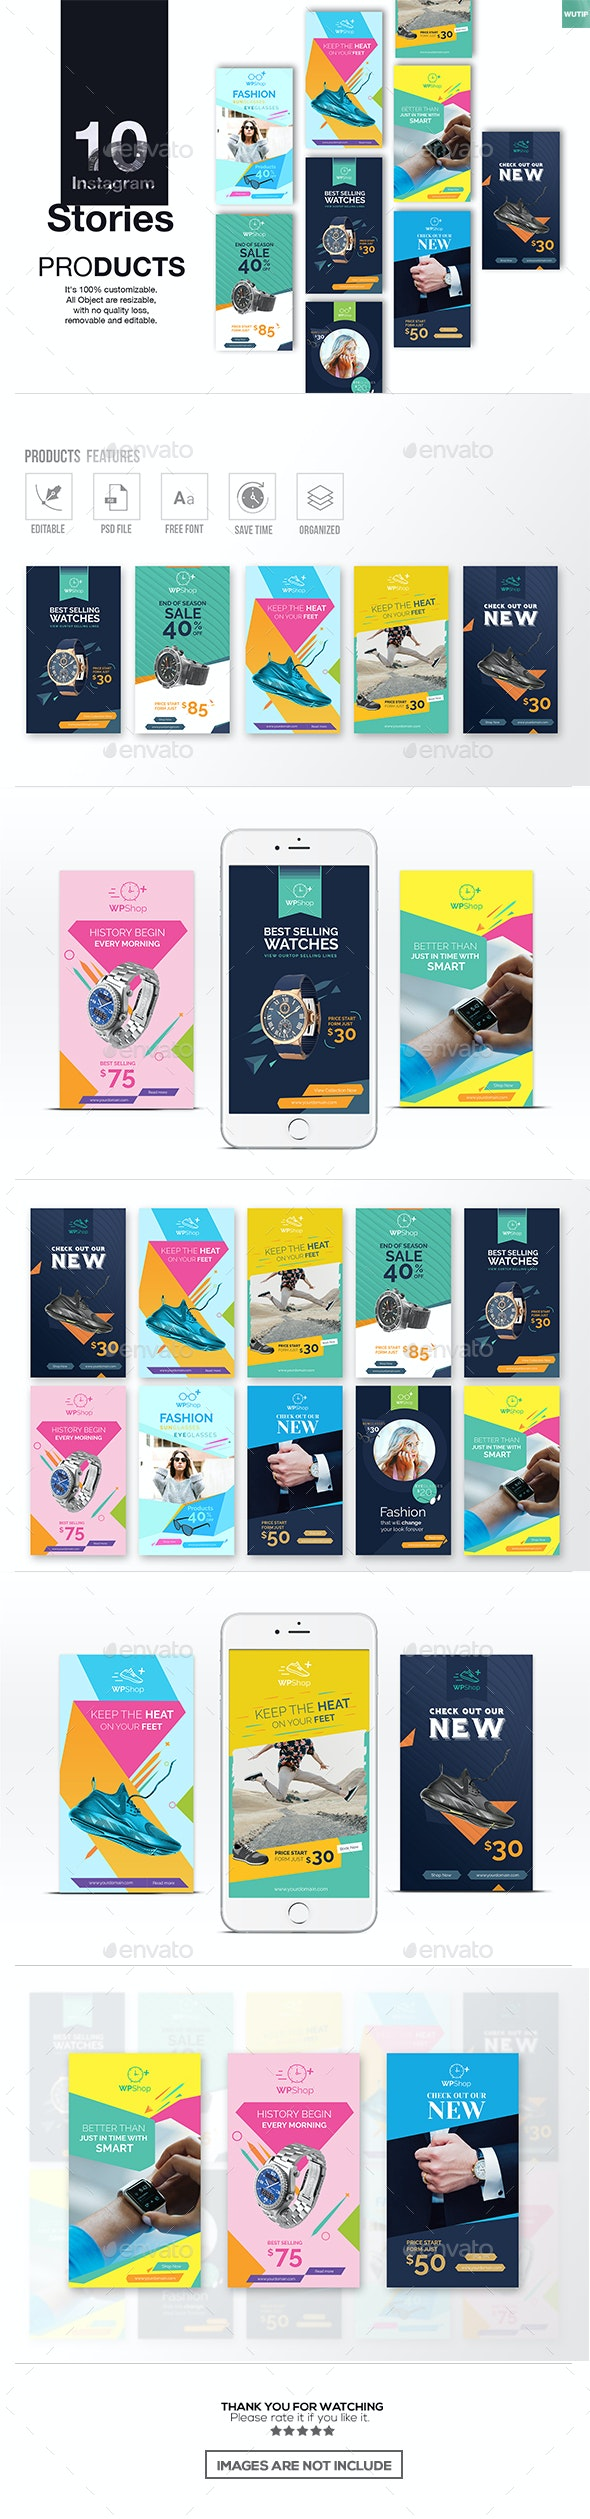 10 Instagram Stories-Products - Miscellaneous Social Media